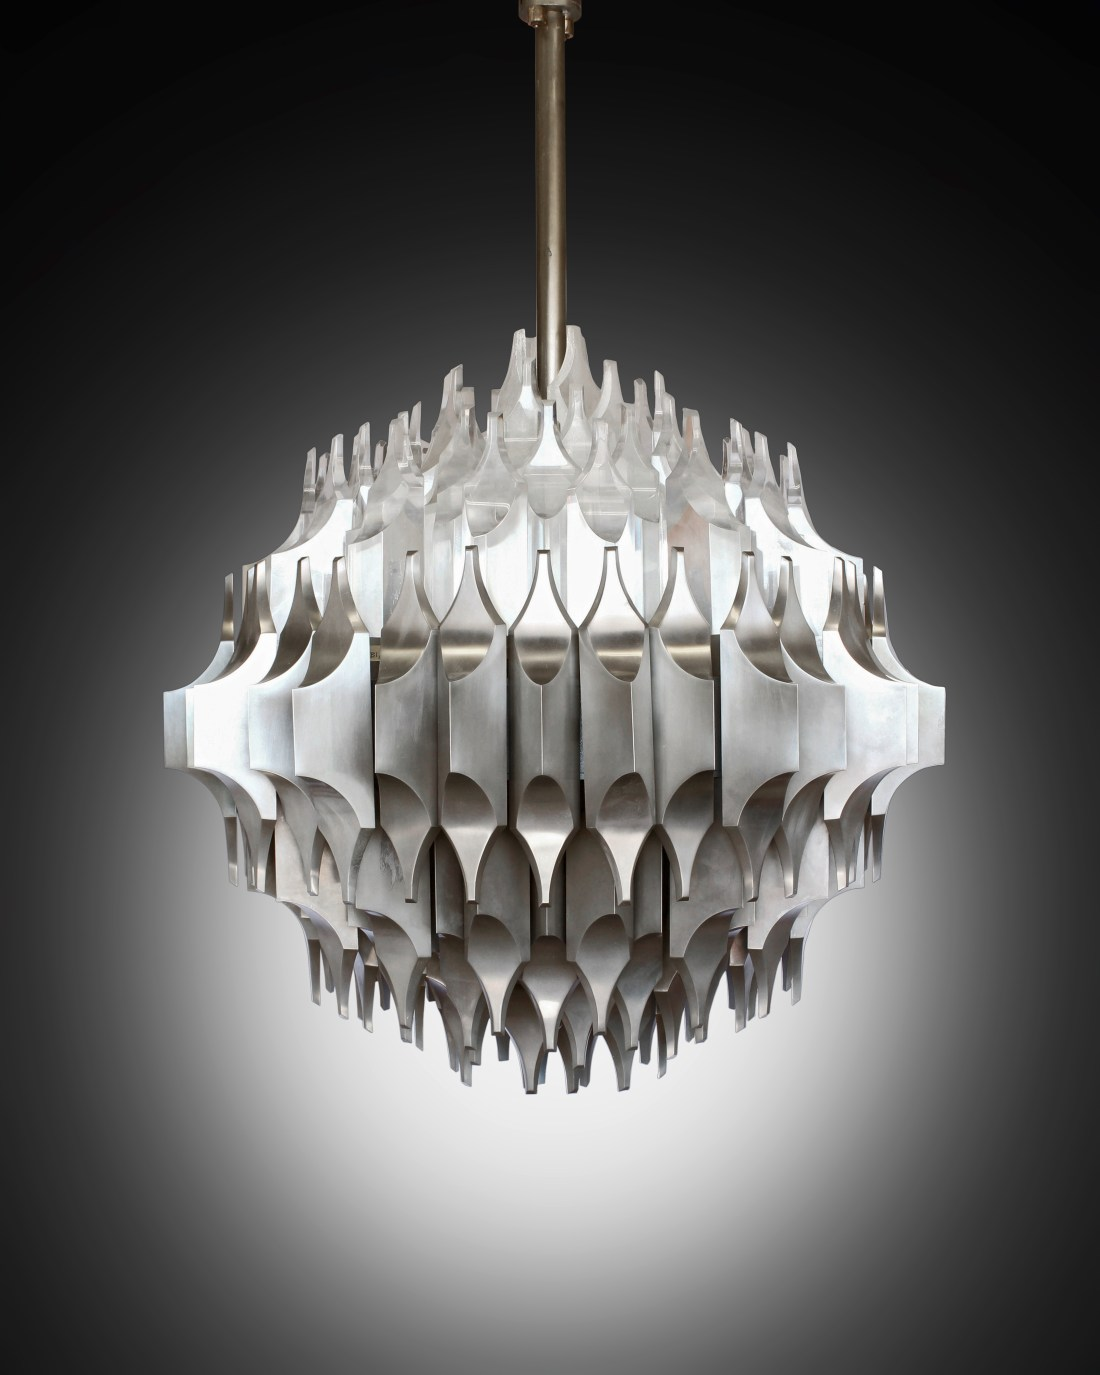 A unique Torciere della Cultura ceiling light, designed by Sami El-Khazen and executed by Arredoluce between 1964 and 1965.